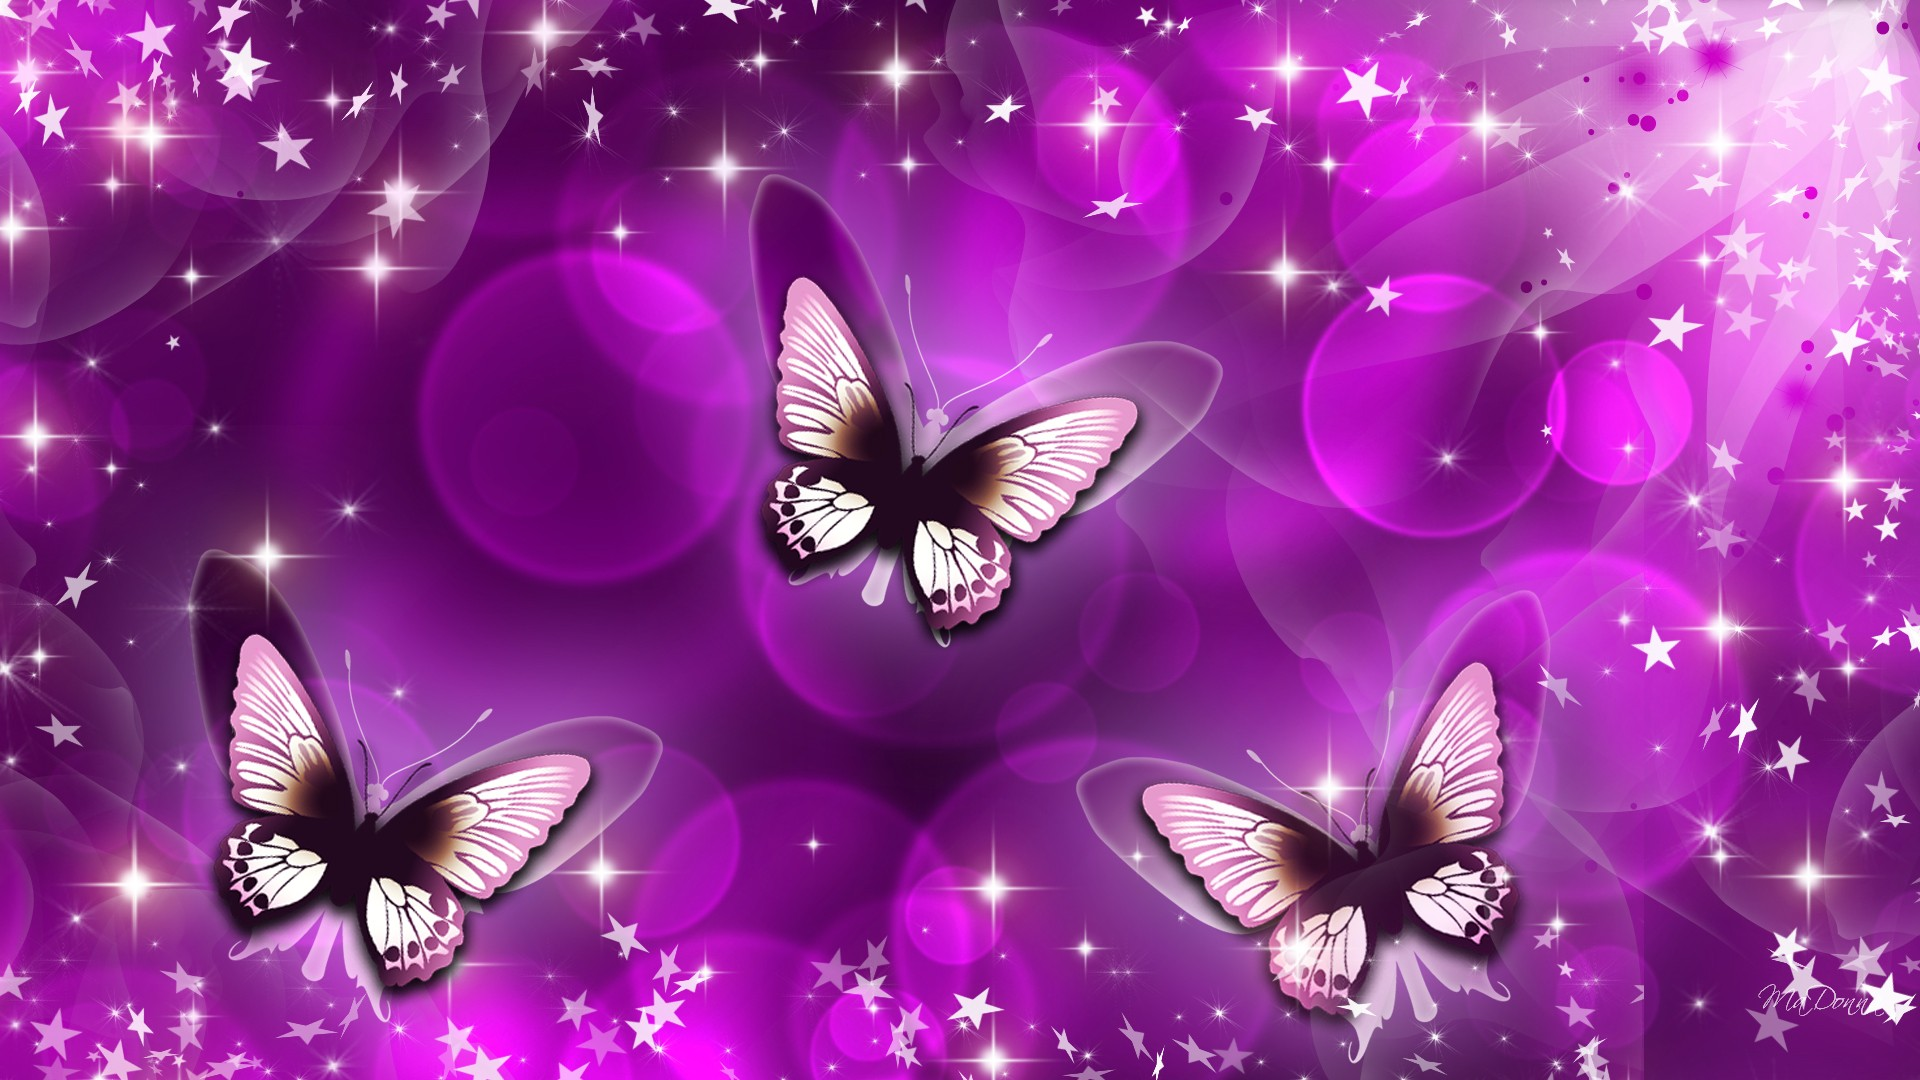 Butterfly Fashion Wallpapers - Android Apps on Google Play